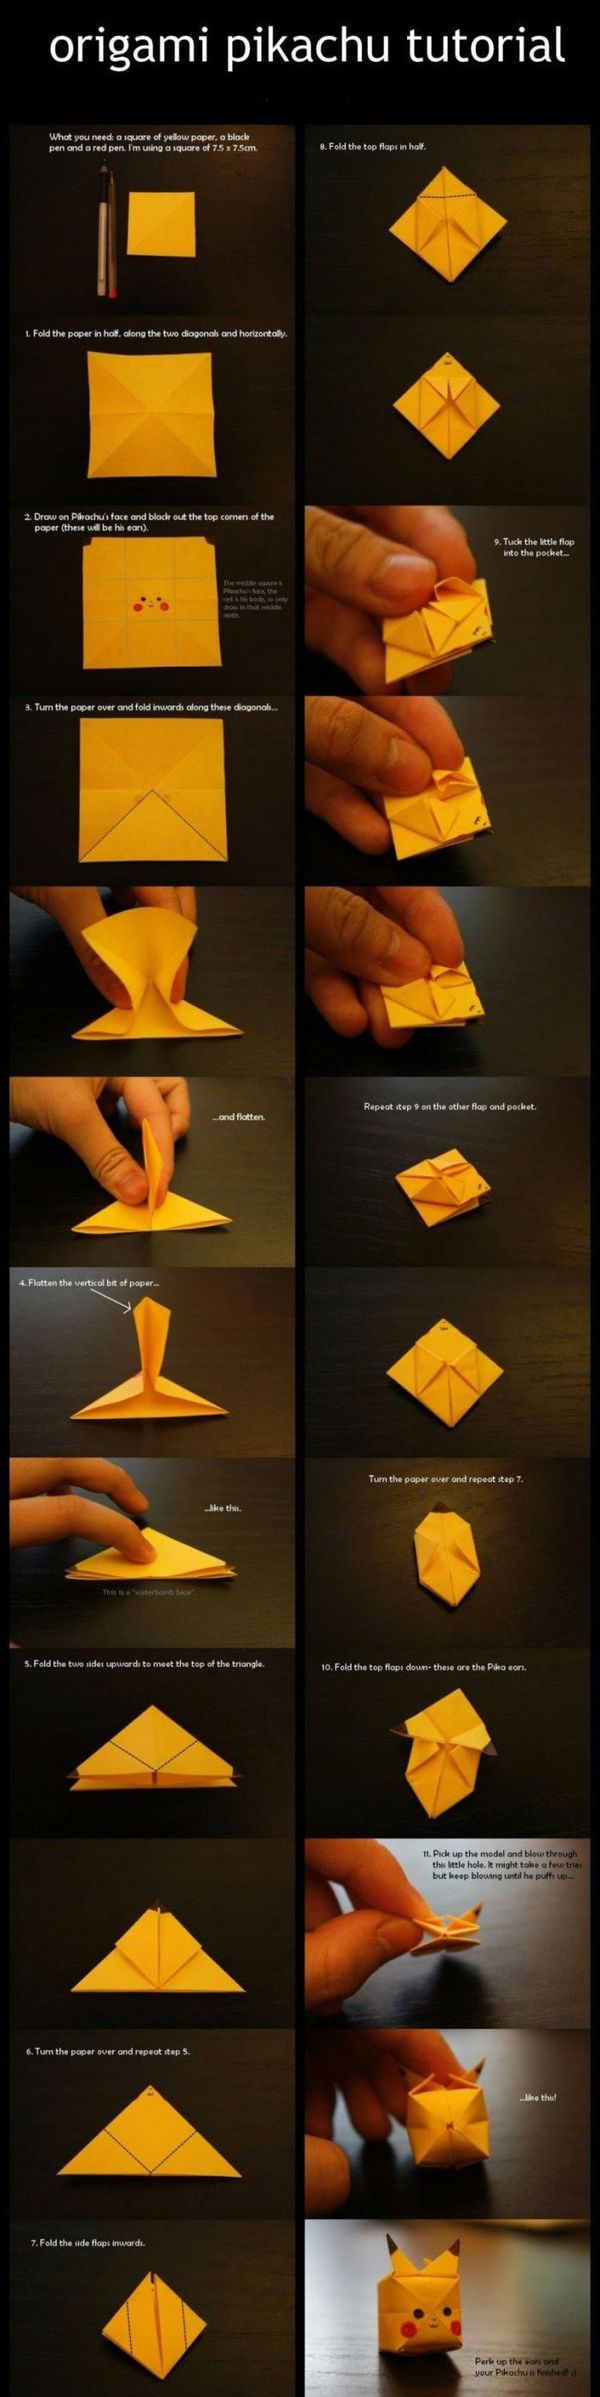 29 Best Images About Origami On Pinterest Paper Bows